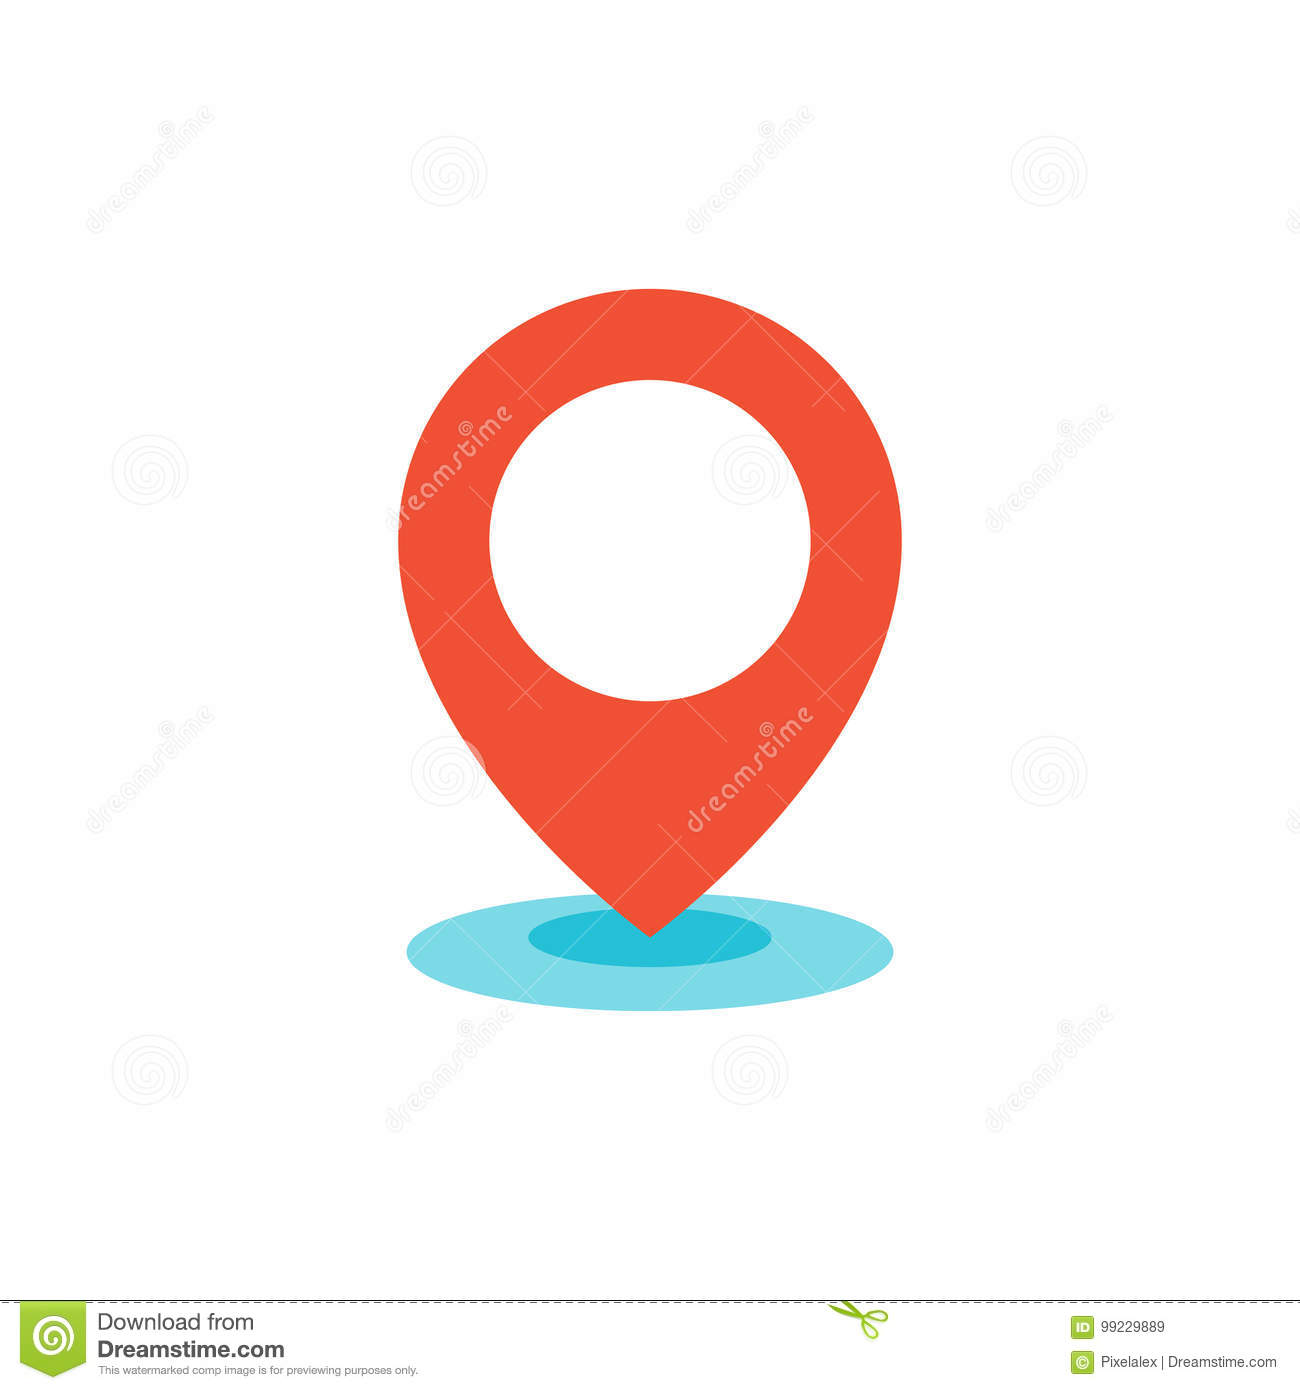 Geo location pin icon flat